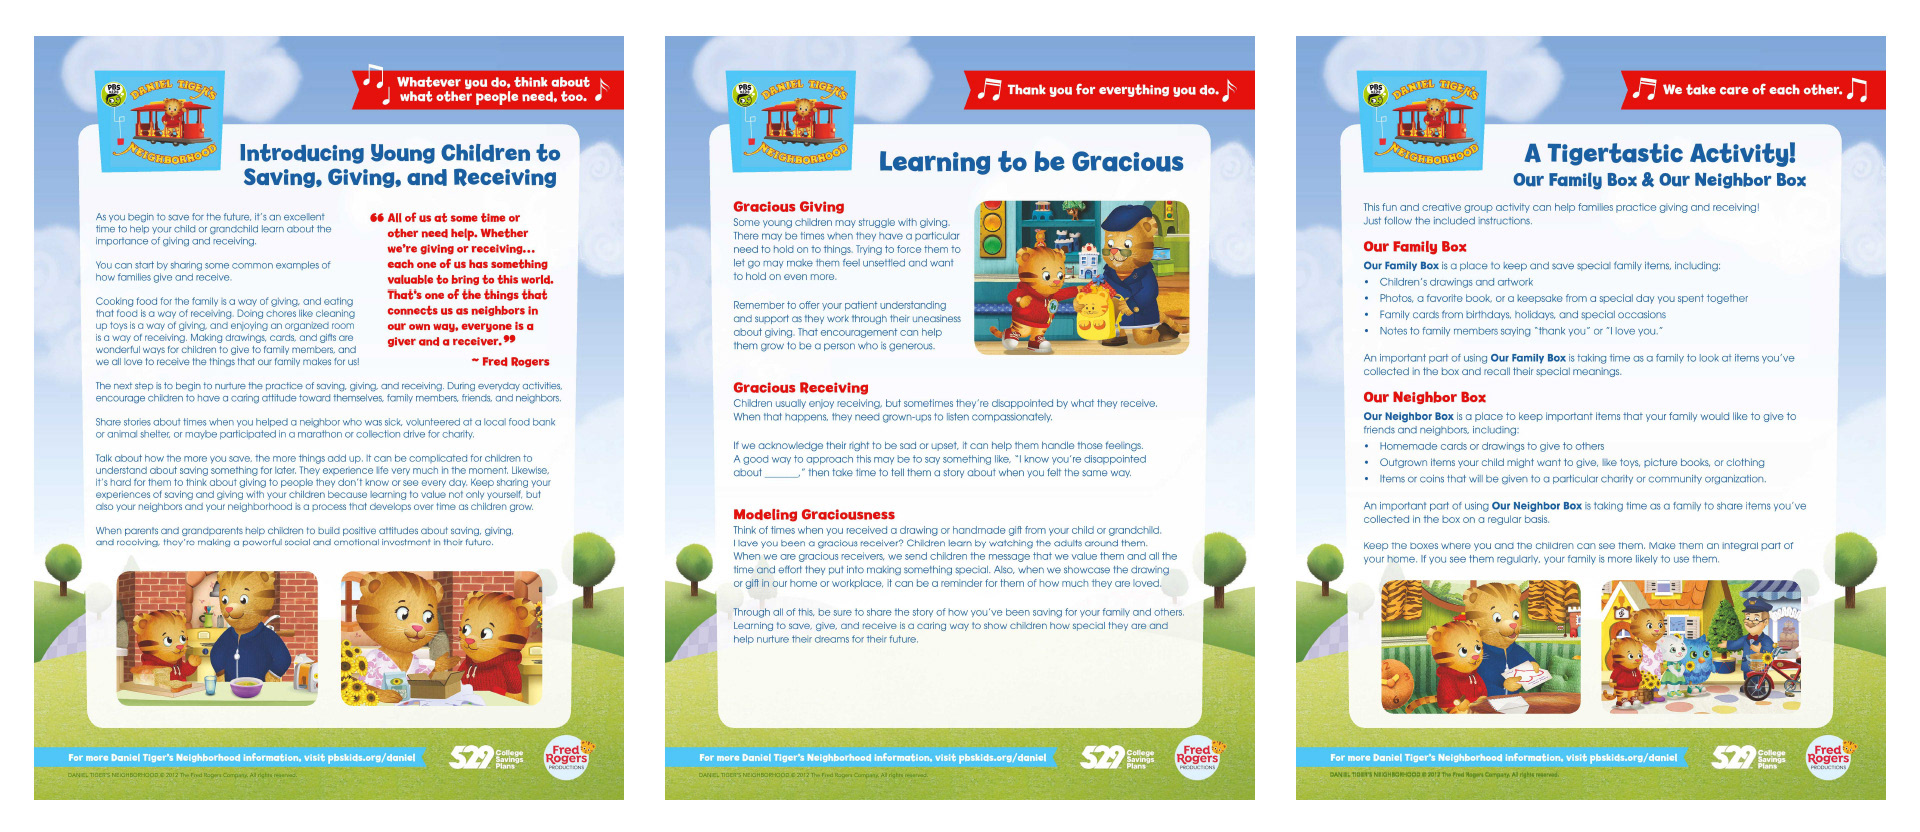 529 College Savings Plans Daniel Tiger's Neighborhood Activity Sheets